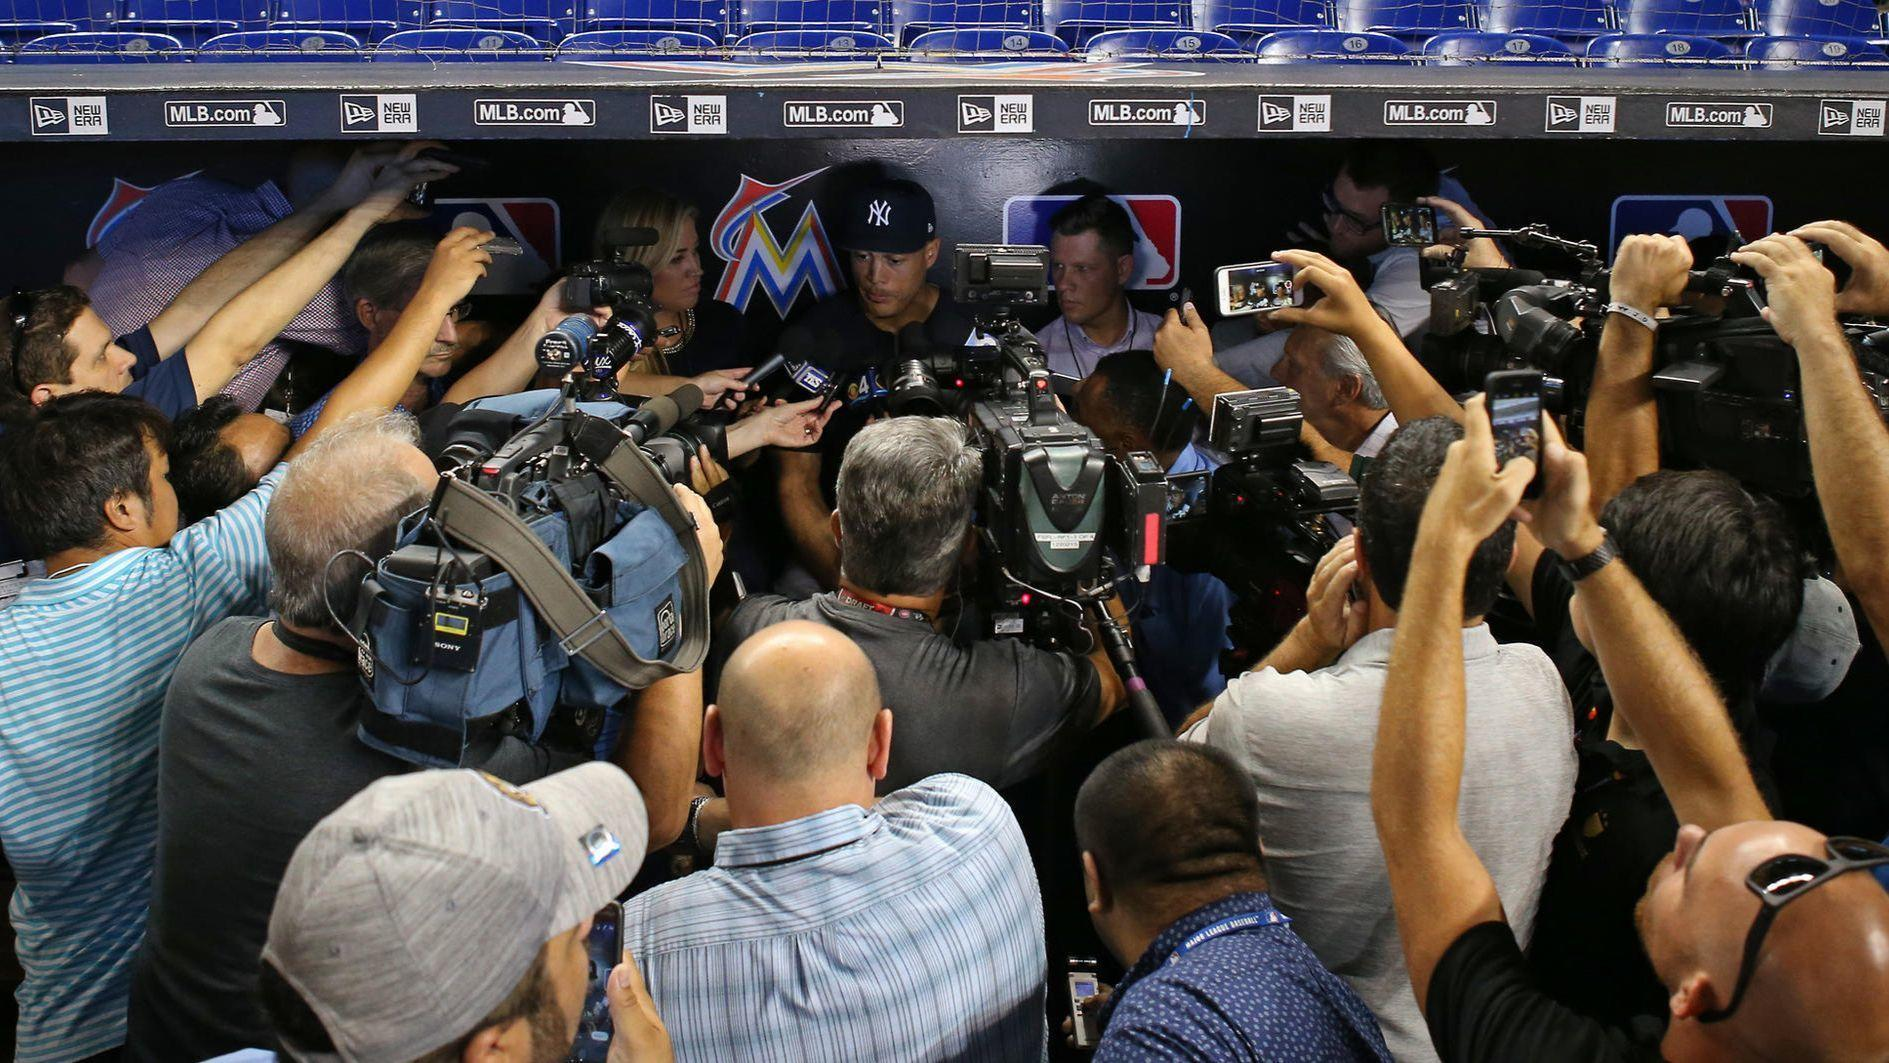 Fl-sp-marlins-notes-yankees-tues-20180821